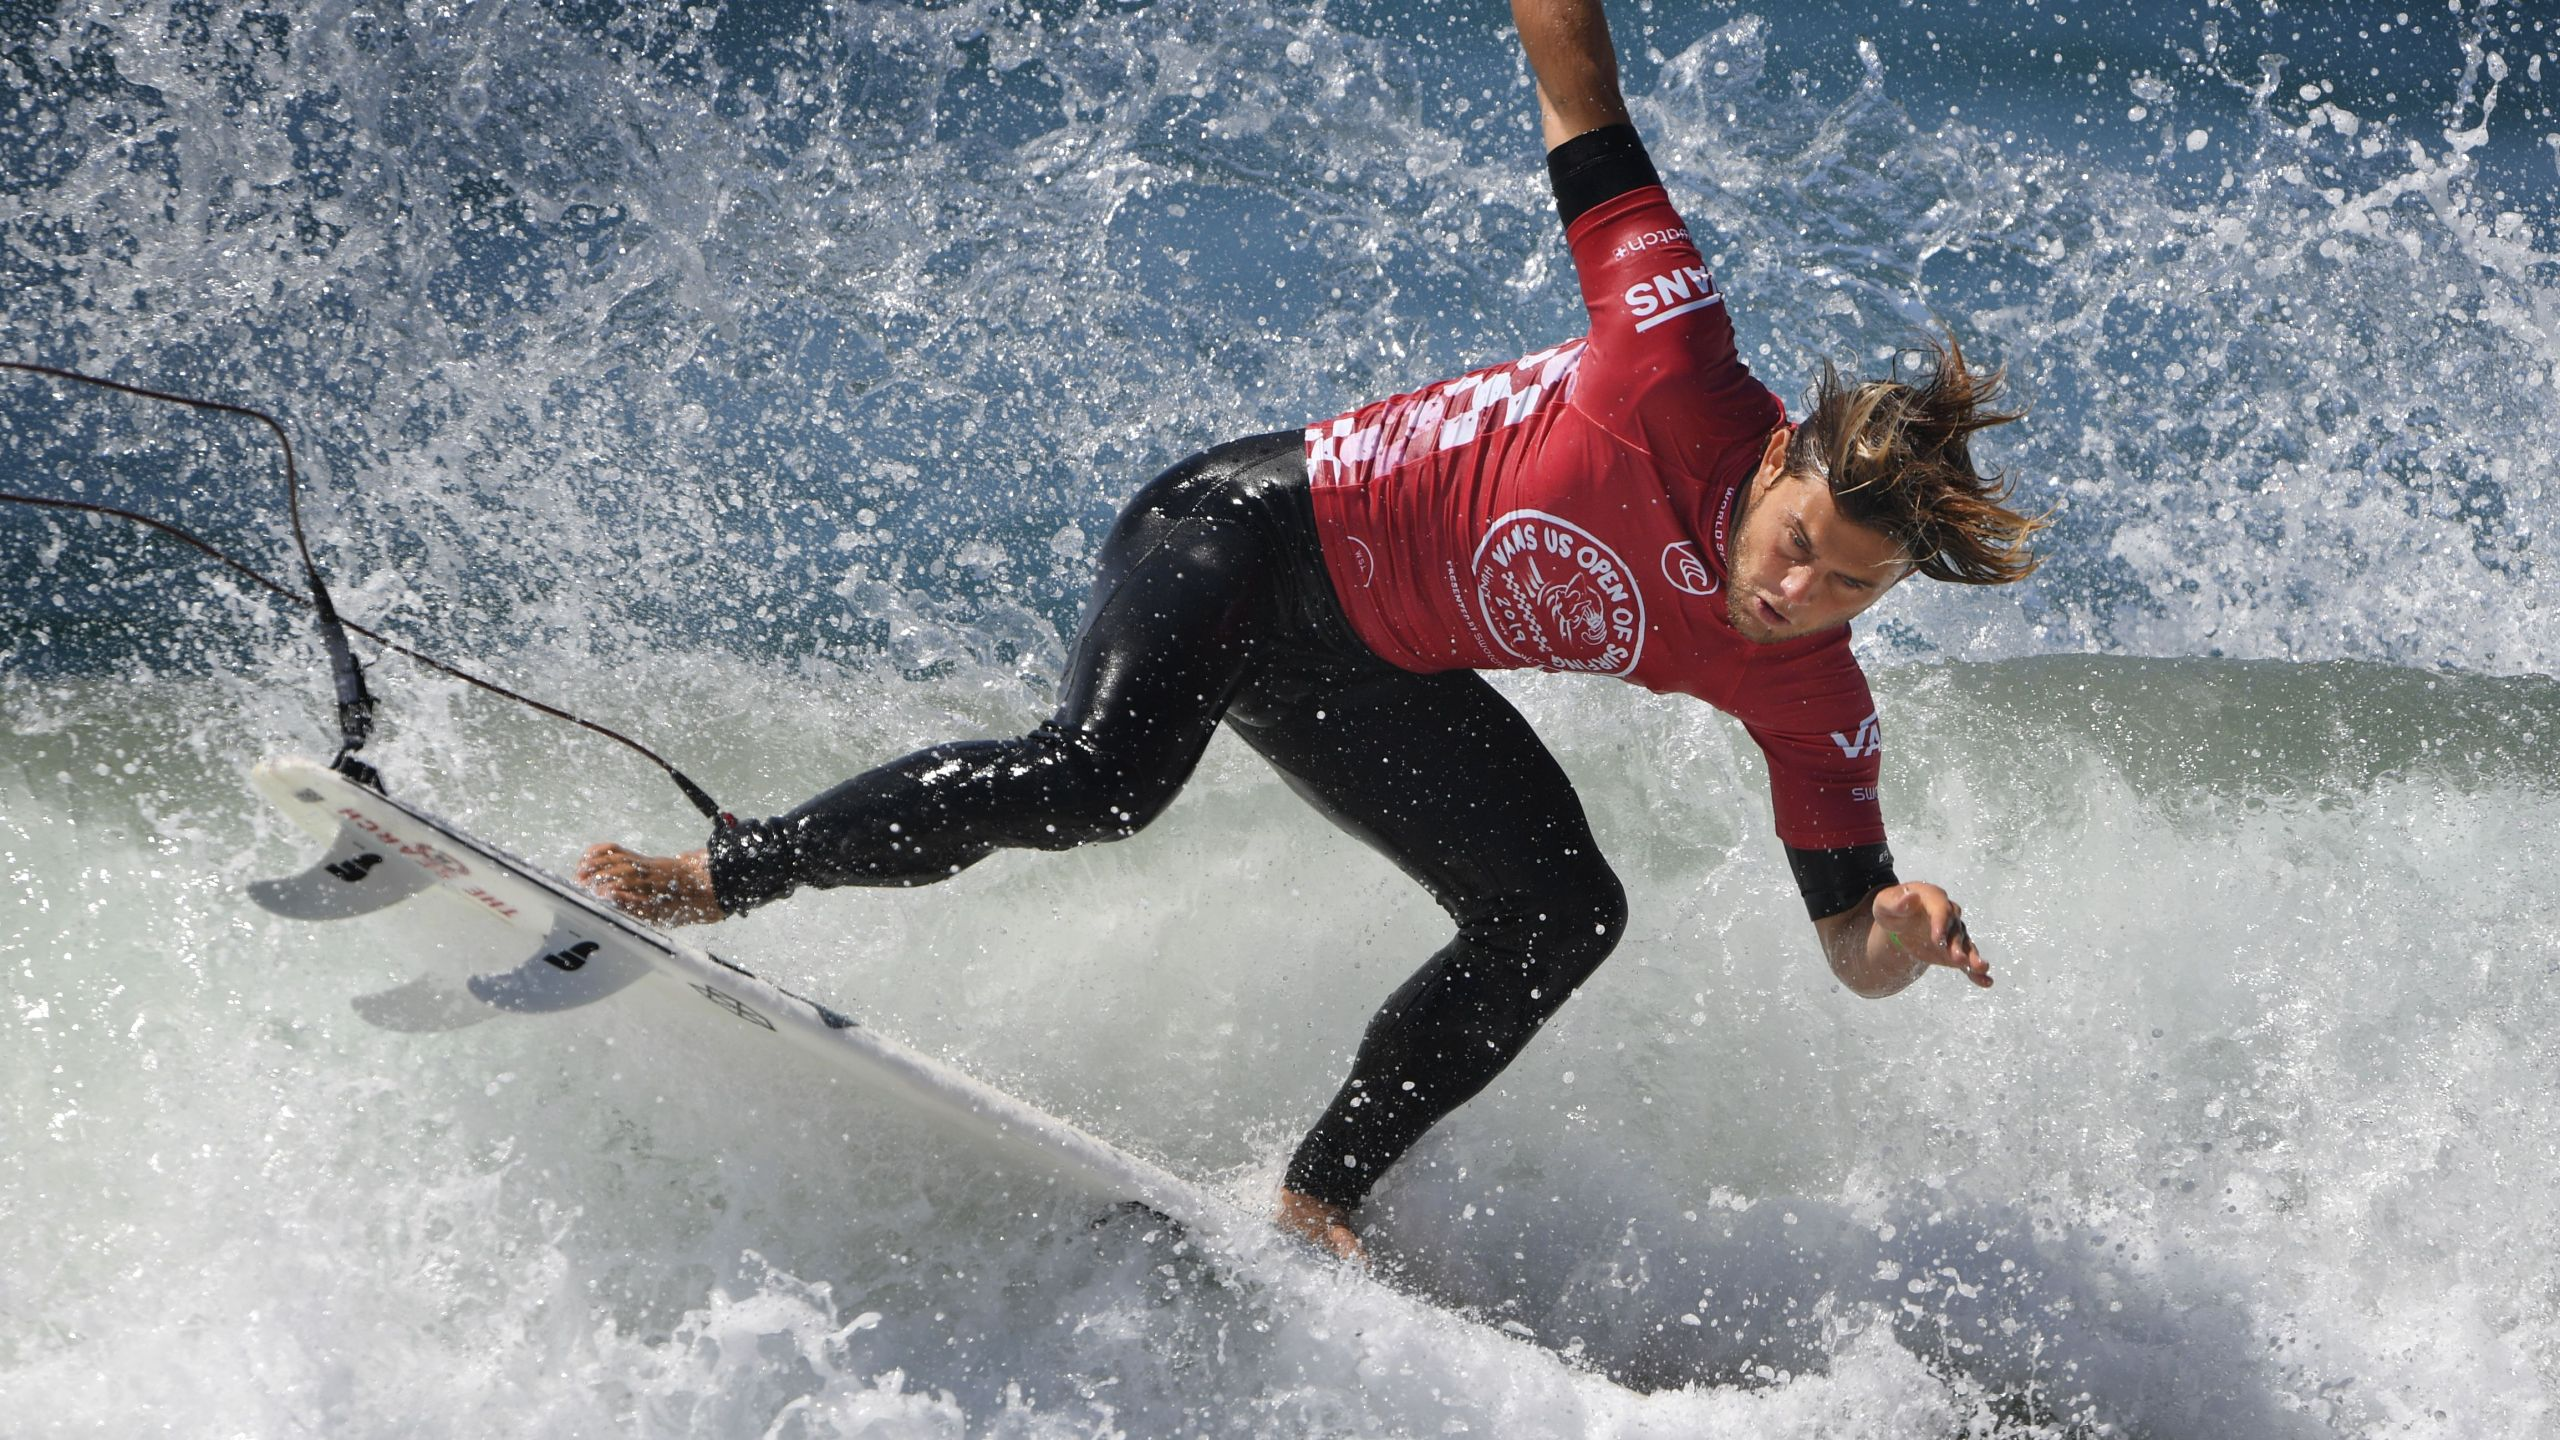 Conner Coffin of the U.S. lands after a rotation during round four of the Vans U.S. Open of Surfing held at Huntington Beach on Aug. 2, 2019. (MARK RALSTON/AFP via Getty Images)